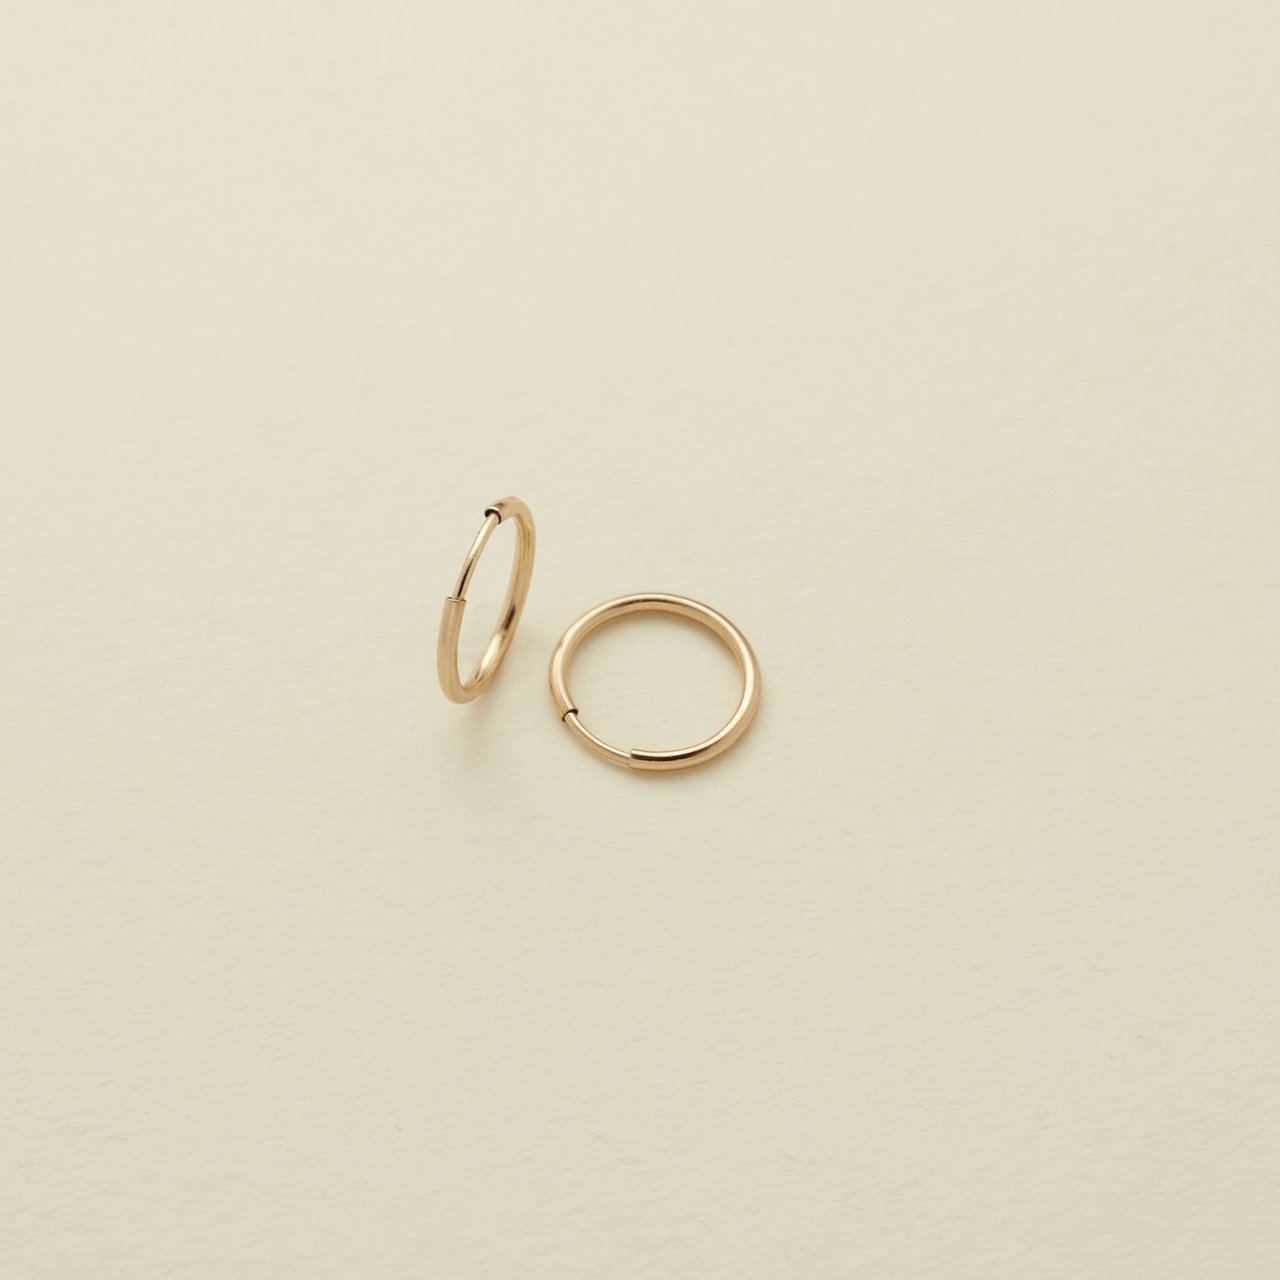 Gold Filled Live In Hoop Earrings - MBM